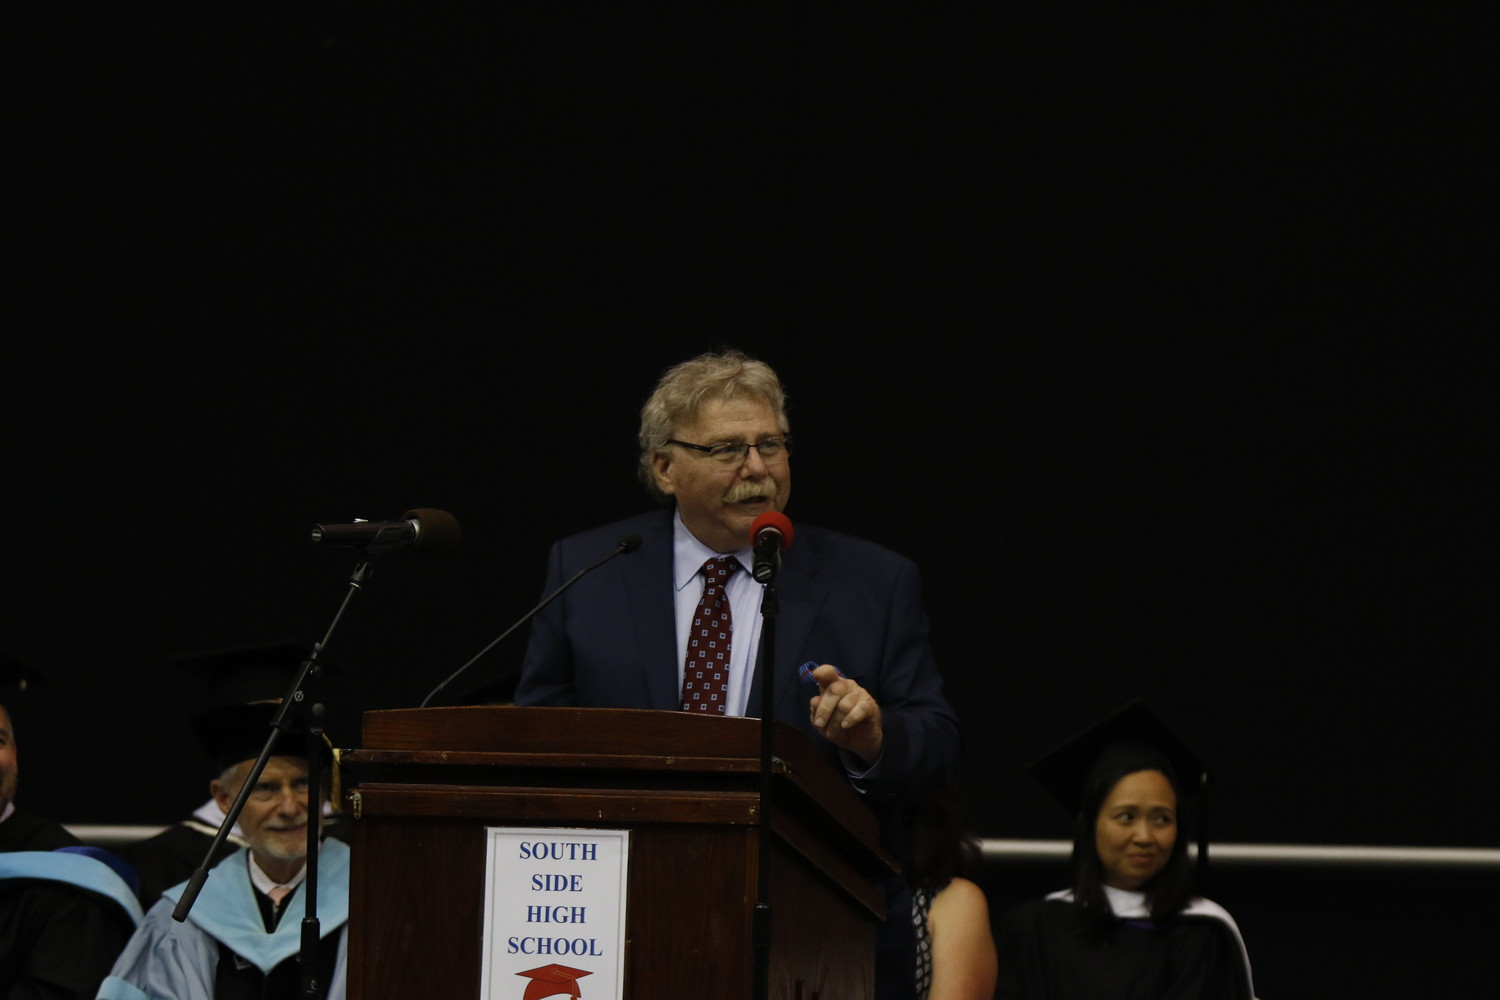 Mark Masin, pictured at last year's South Side High School graduation, decided not to run for re-election after 15 years on the Board of Education.